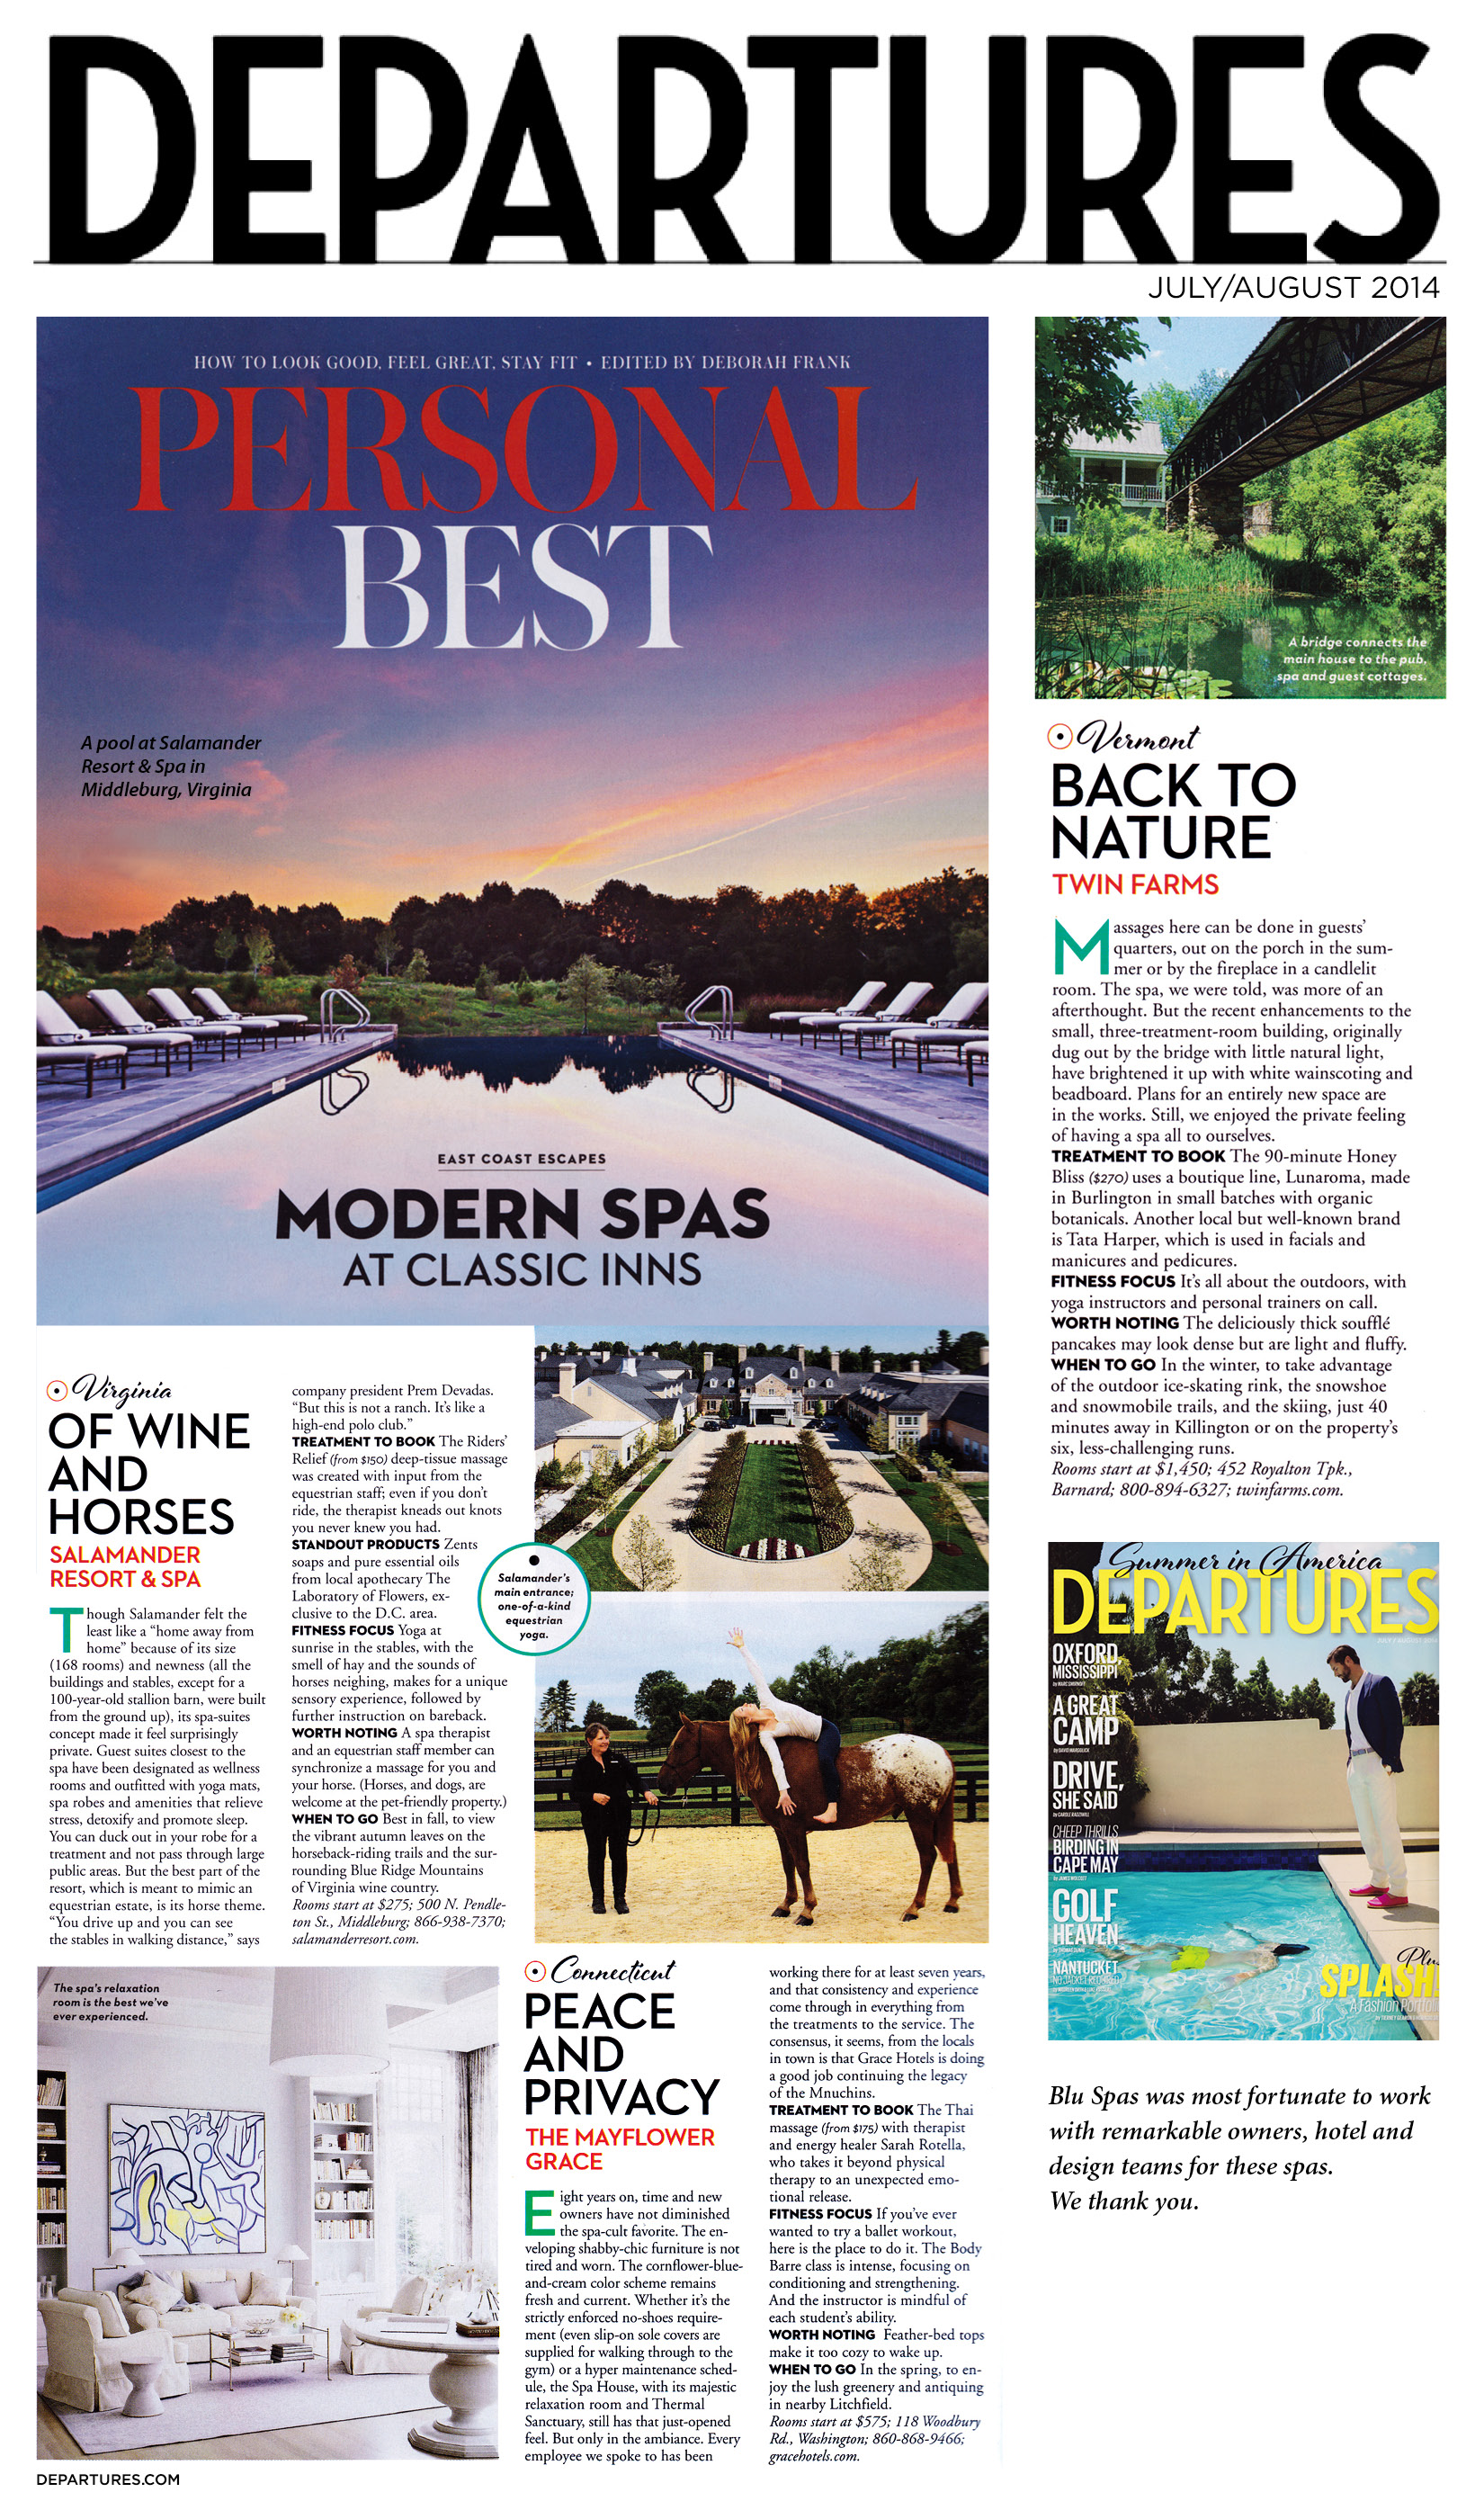 Departures Magazine - Modern Spas at Classic Inns